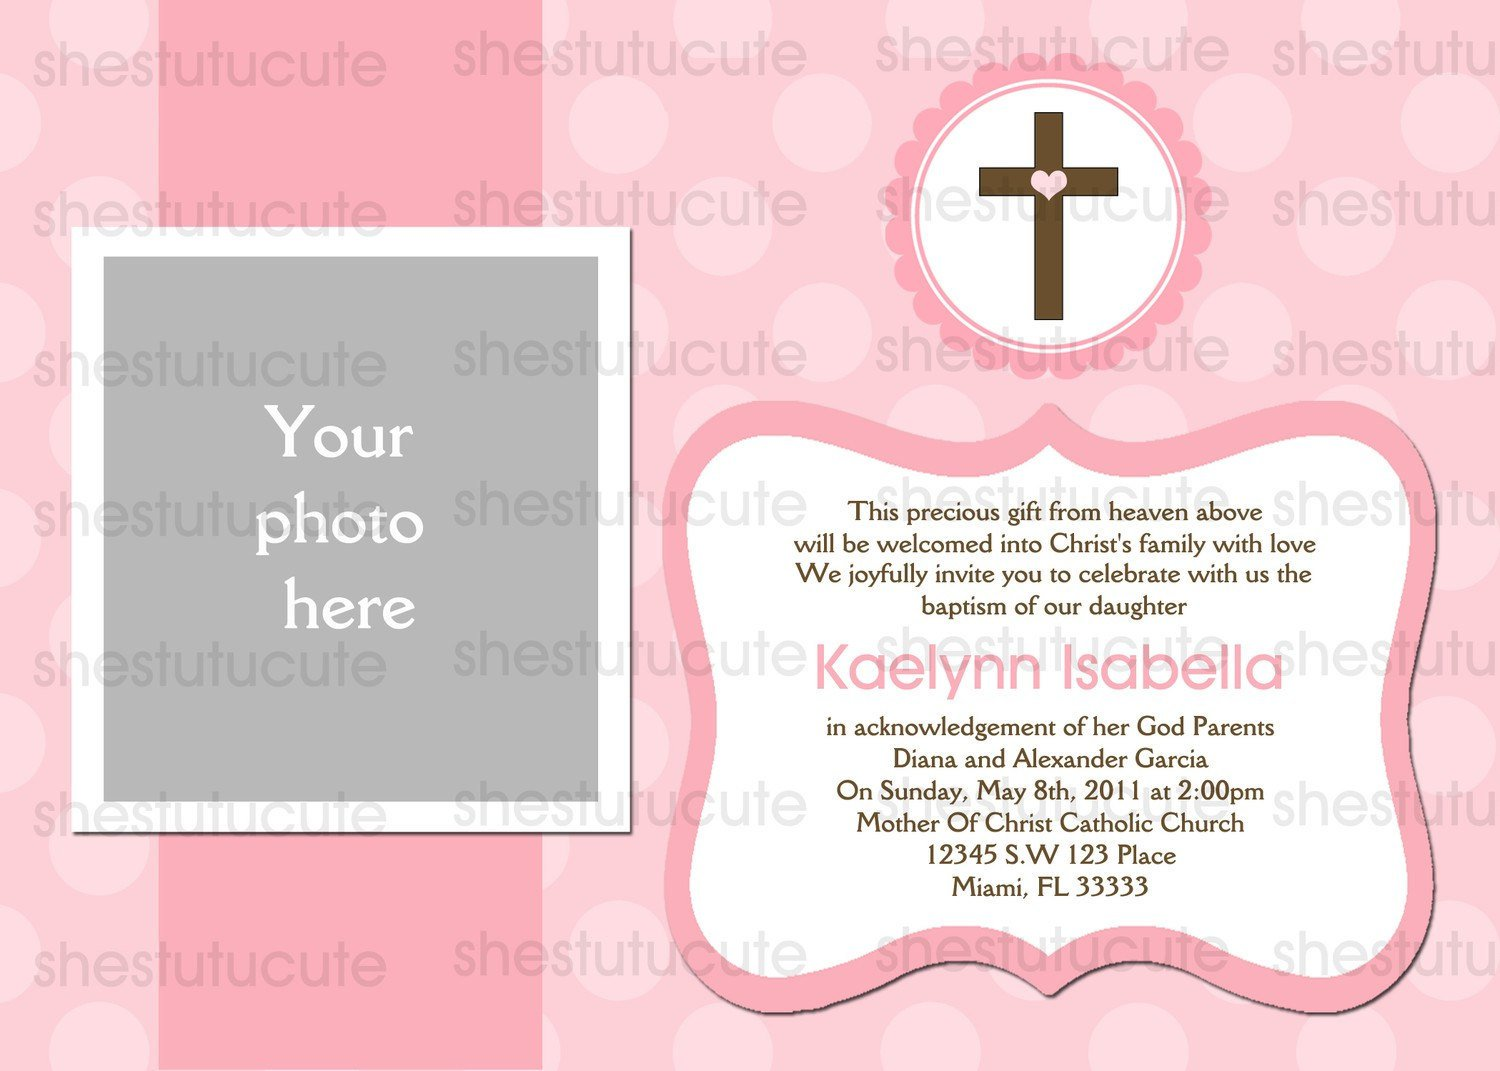 Formal invitation maker leoncapers formal invitation maker stopboris Choice Image